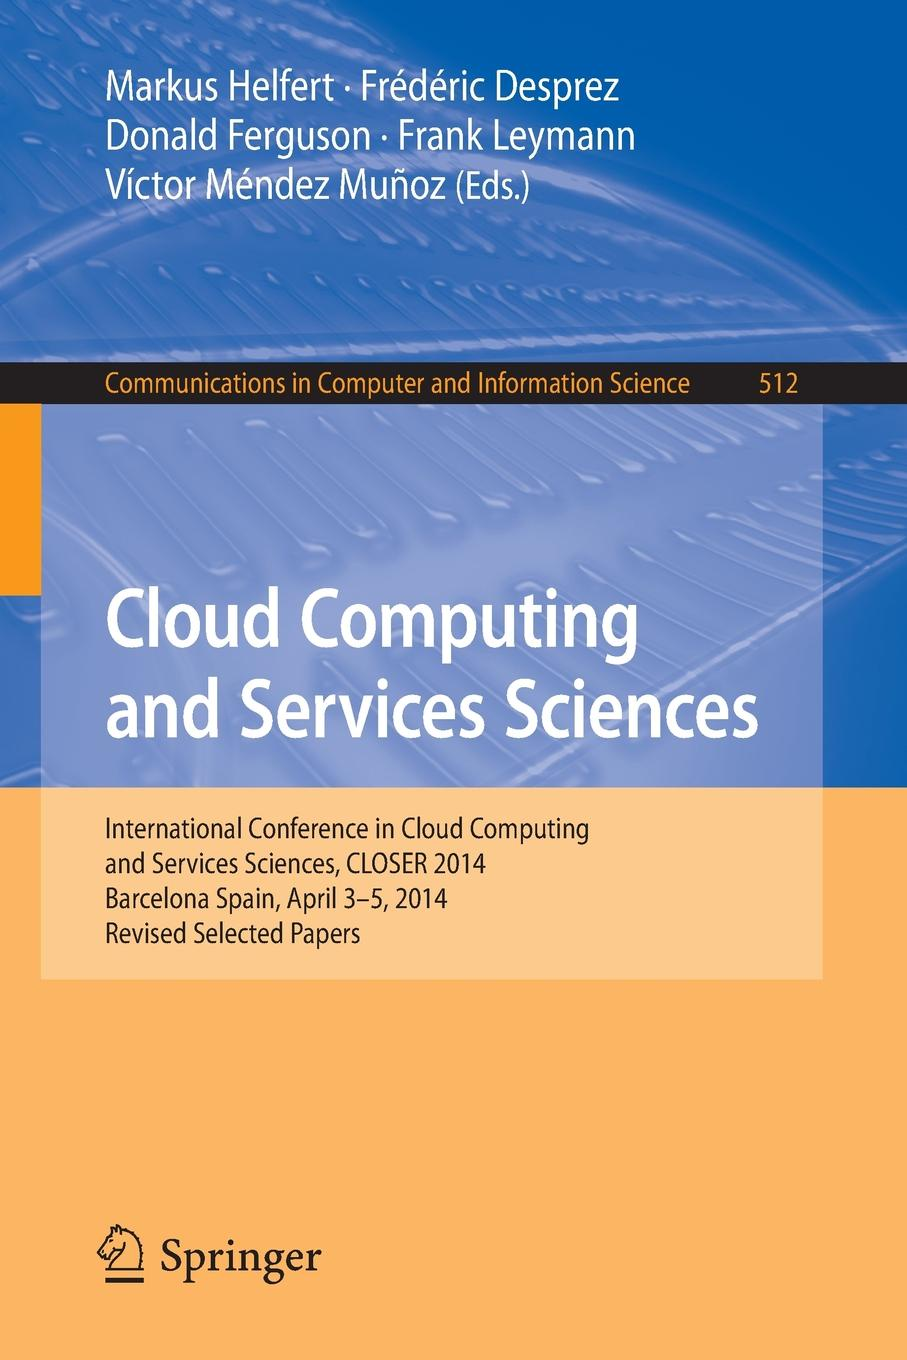 Cloud Computing and Services Sciences. International Conference in Sciences, CLOSER 2014 Barcelona Spain, April 3-5, Revised Selected Papers